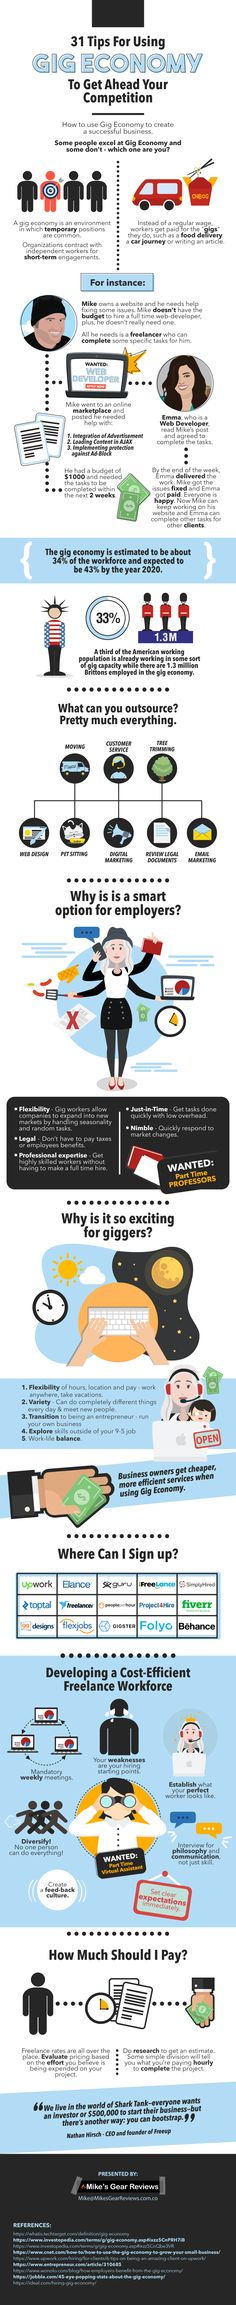 31 Tips For Using Gig Economy To Get Ahead Your Competition Temporary Jobs, Life Advice, Survival Guide, Economics, Real Life, Competition, Prepping, Infographic, Finance